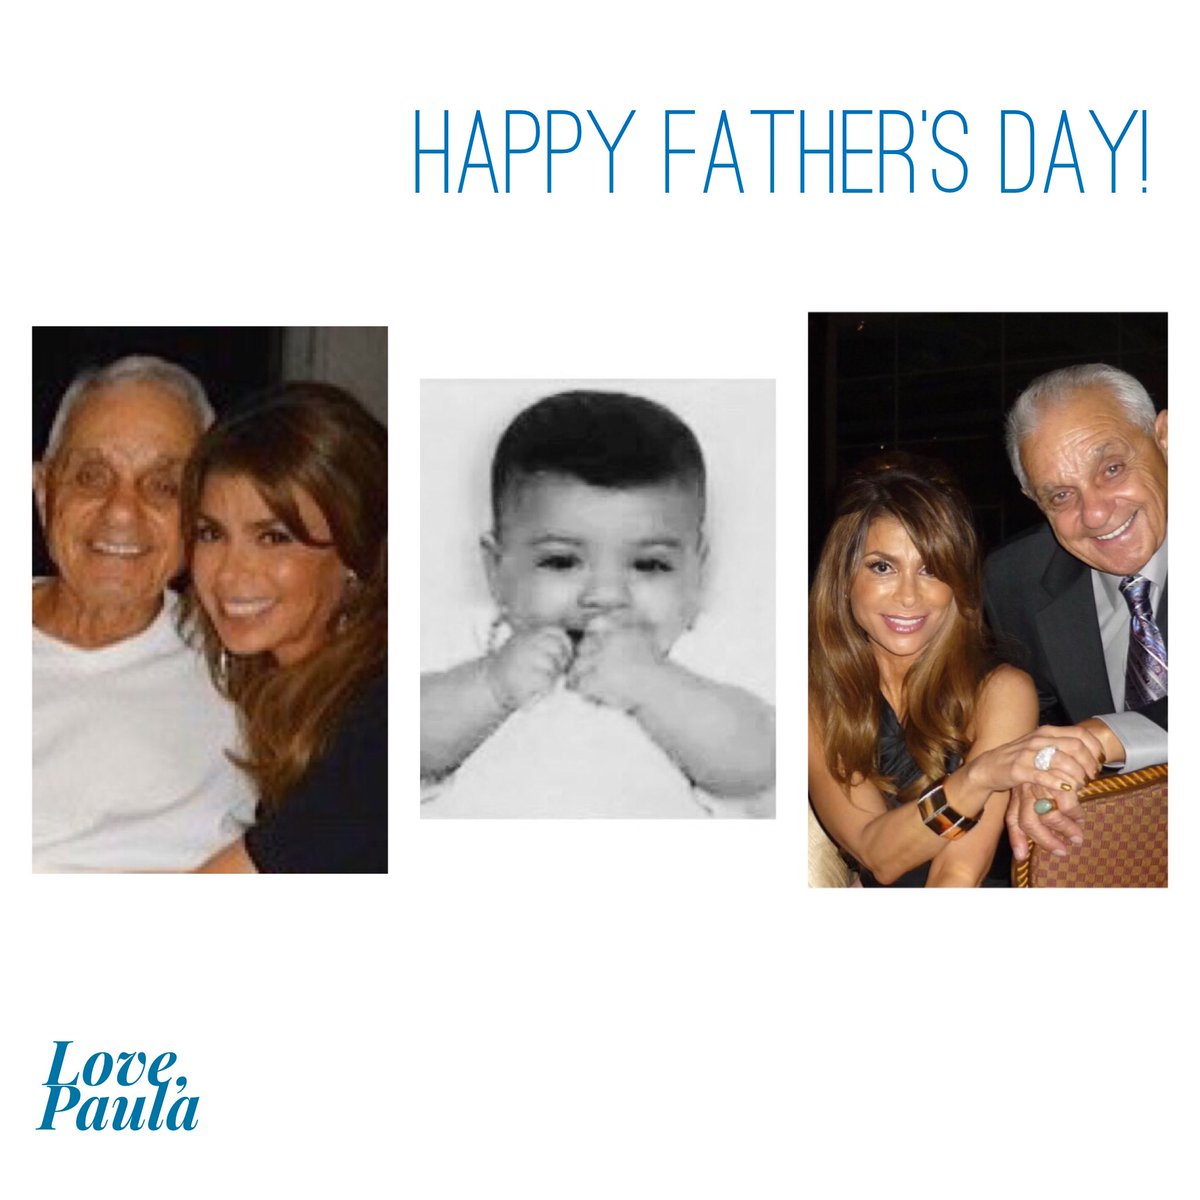 Yep. I'm a Daddy's Girl, through and through! Happy Father's day to all you dads! Sending love! xoP  ???? #FathersDay https://t.co/CknYMJzqLW